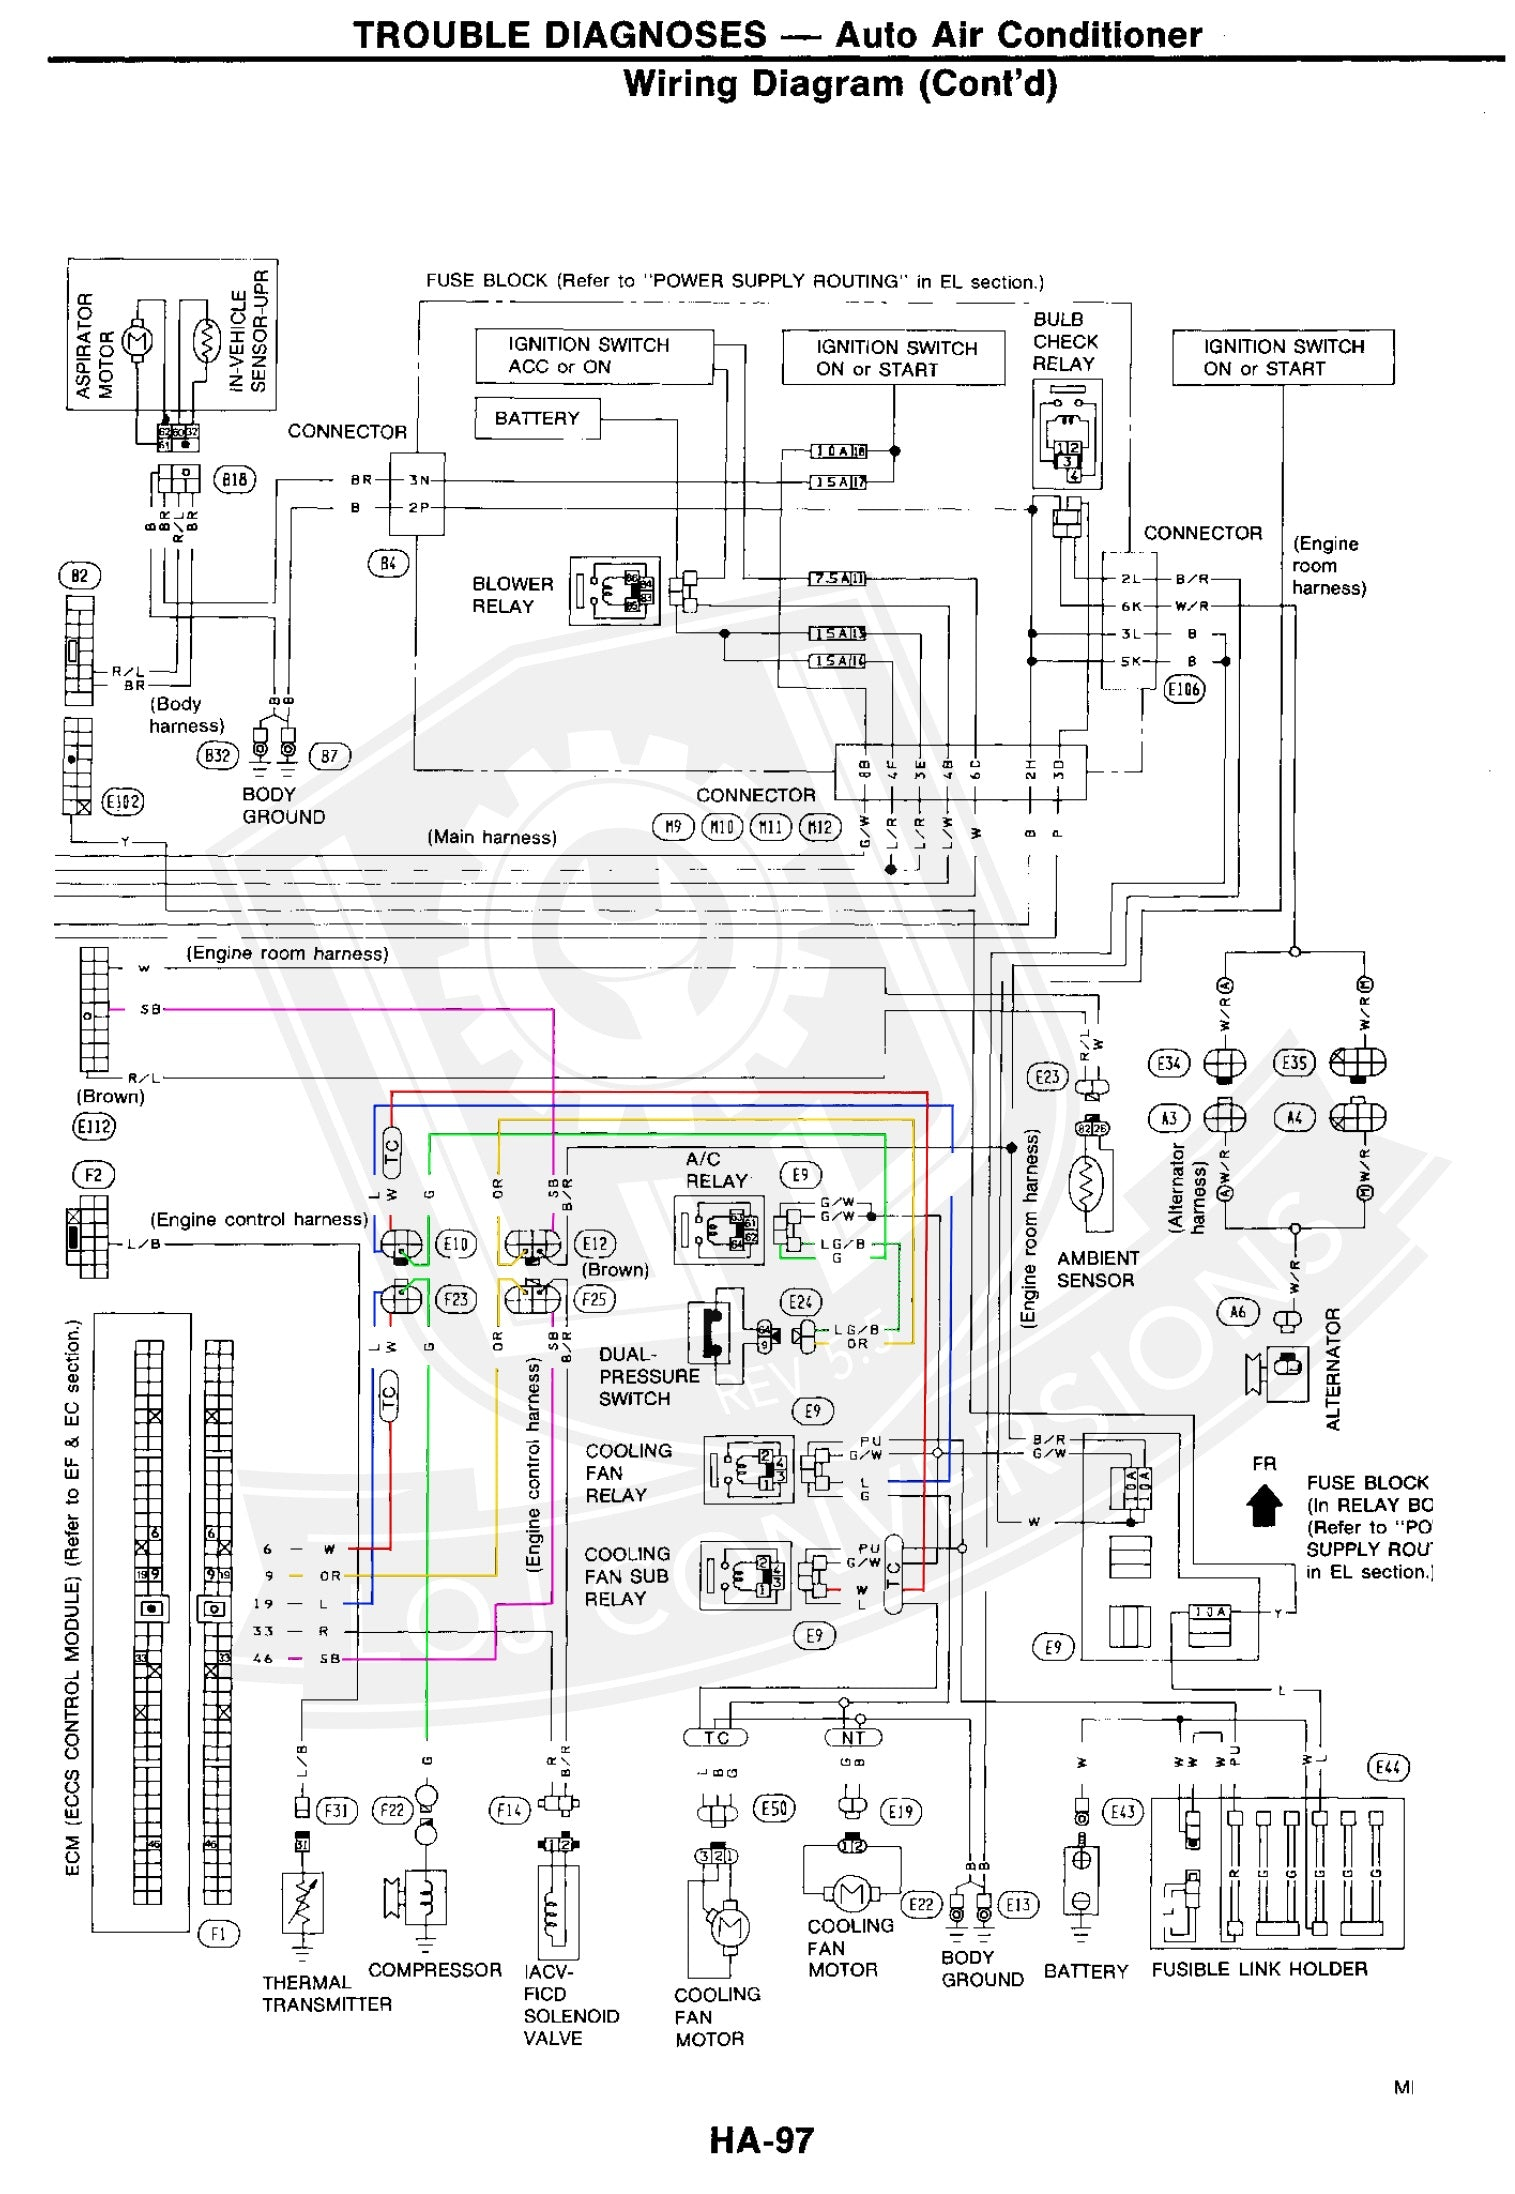 1994 300zx engine wiring diagram schematics wiring diagrams u2022 rh theanecdote co 300ZX Alternator Harness 1990 300Zx Oil Pressure Harness